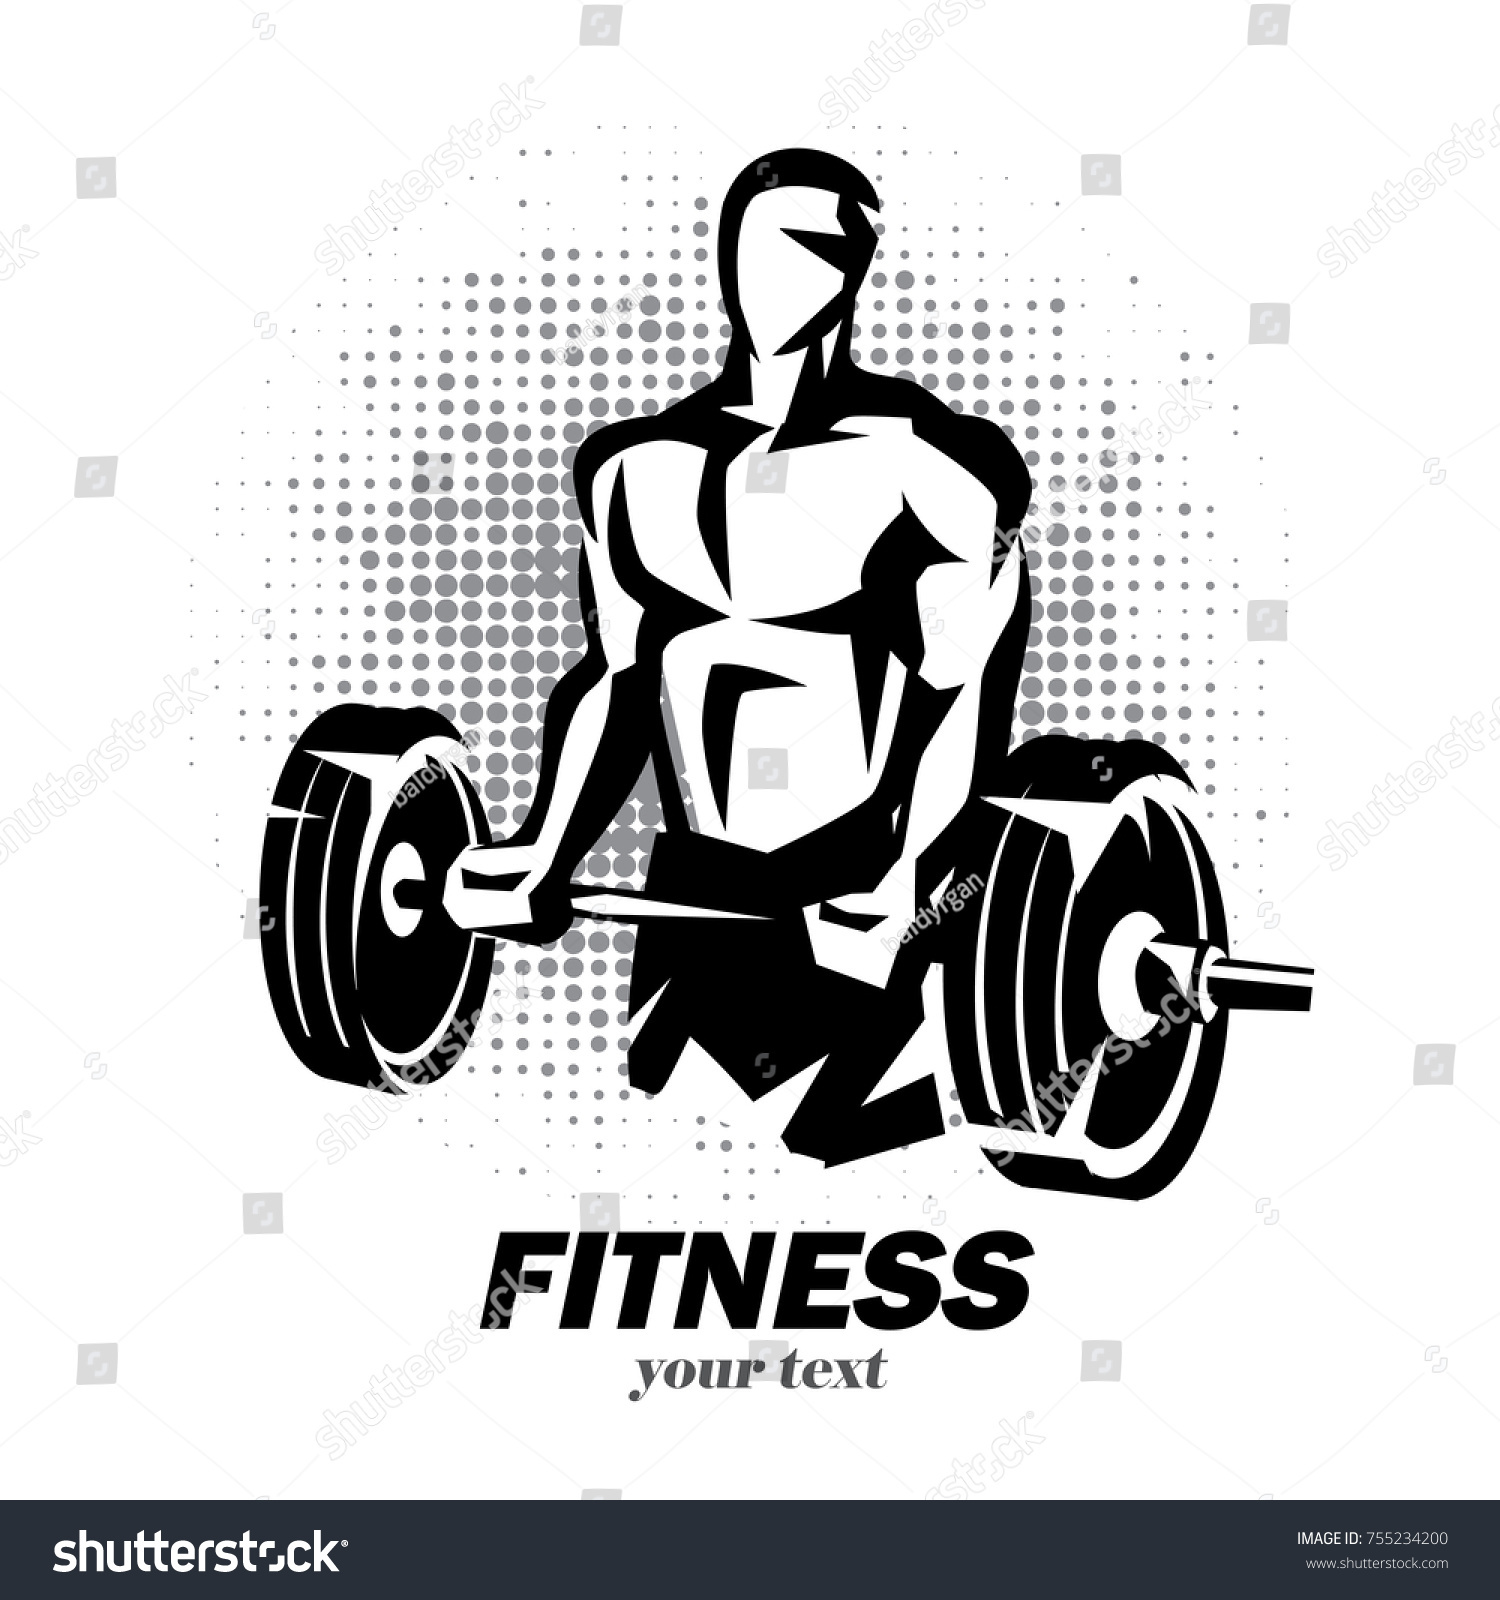 athlete barbell silhouette weight lifting logo stock vector rh shutterstock com weight lifting log weight lifting log sheet